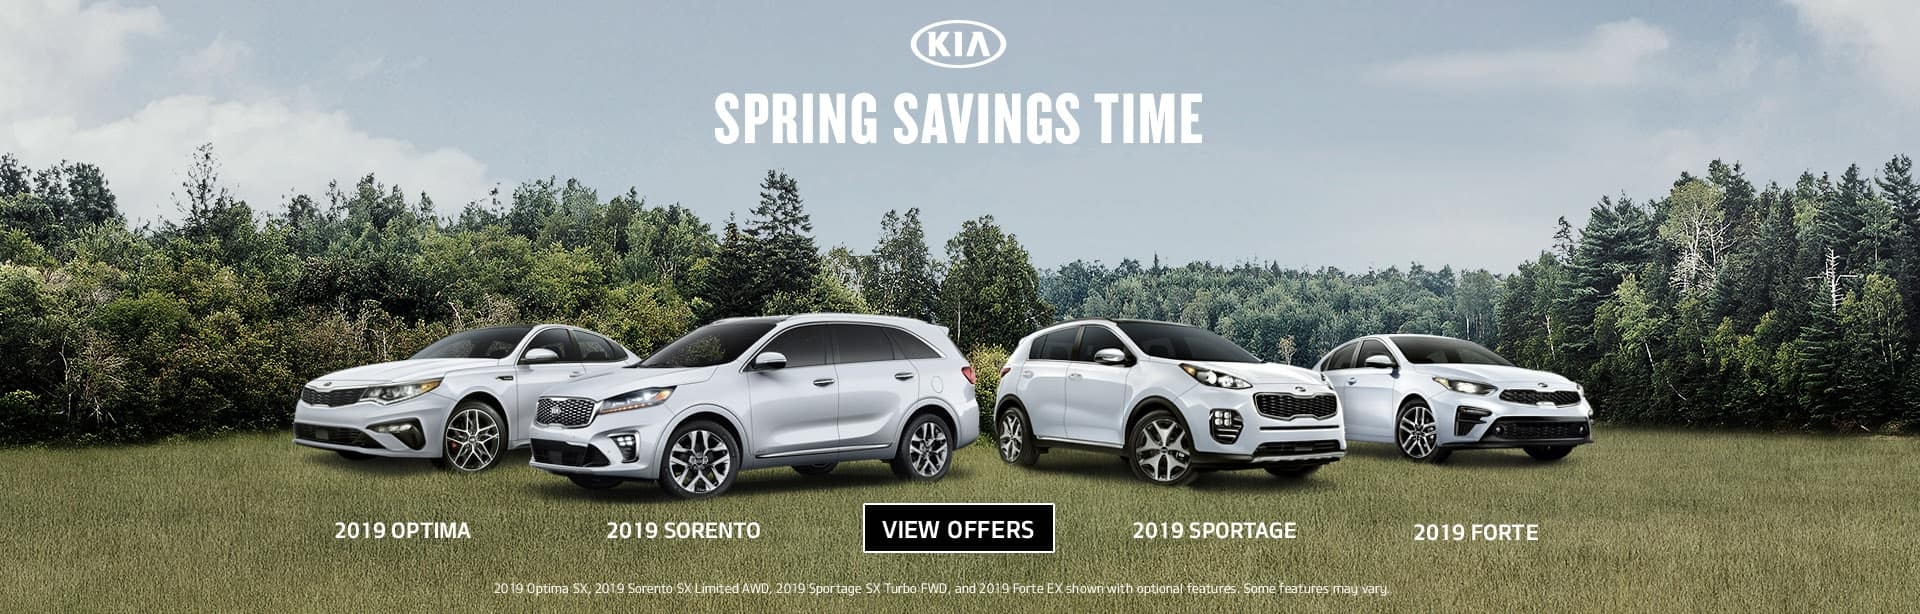 Spring Savings Time 201905